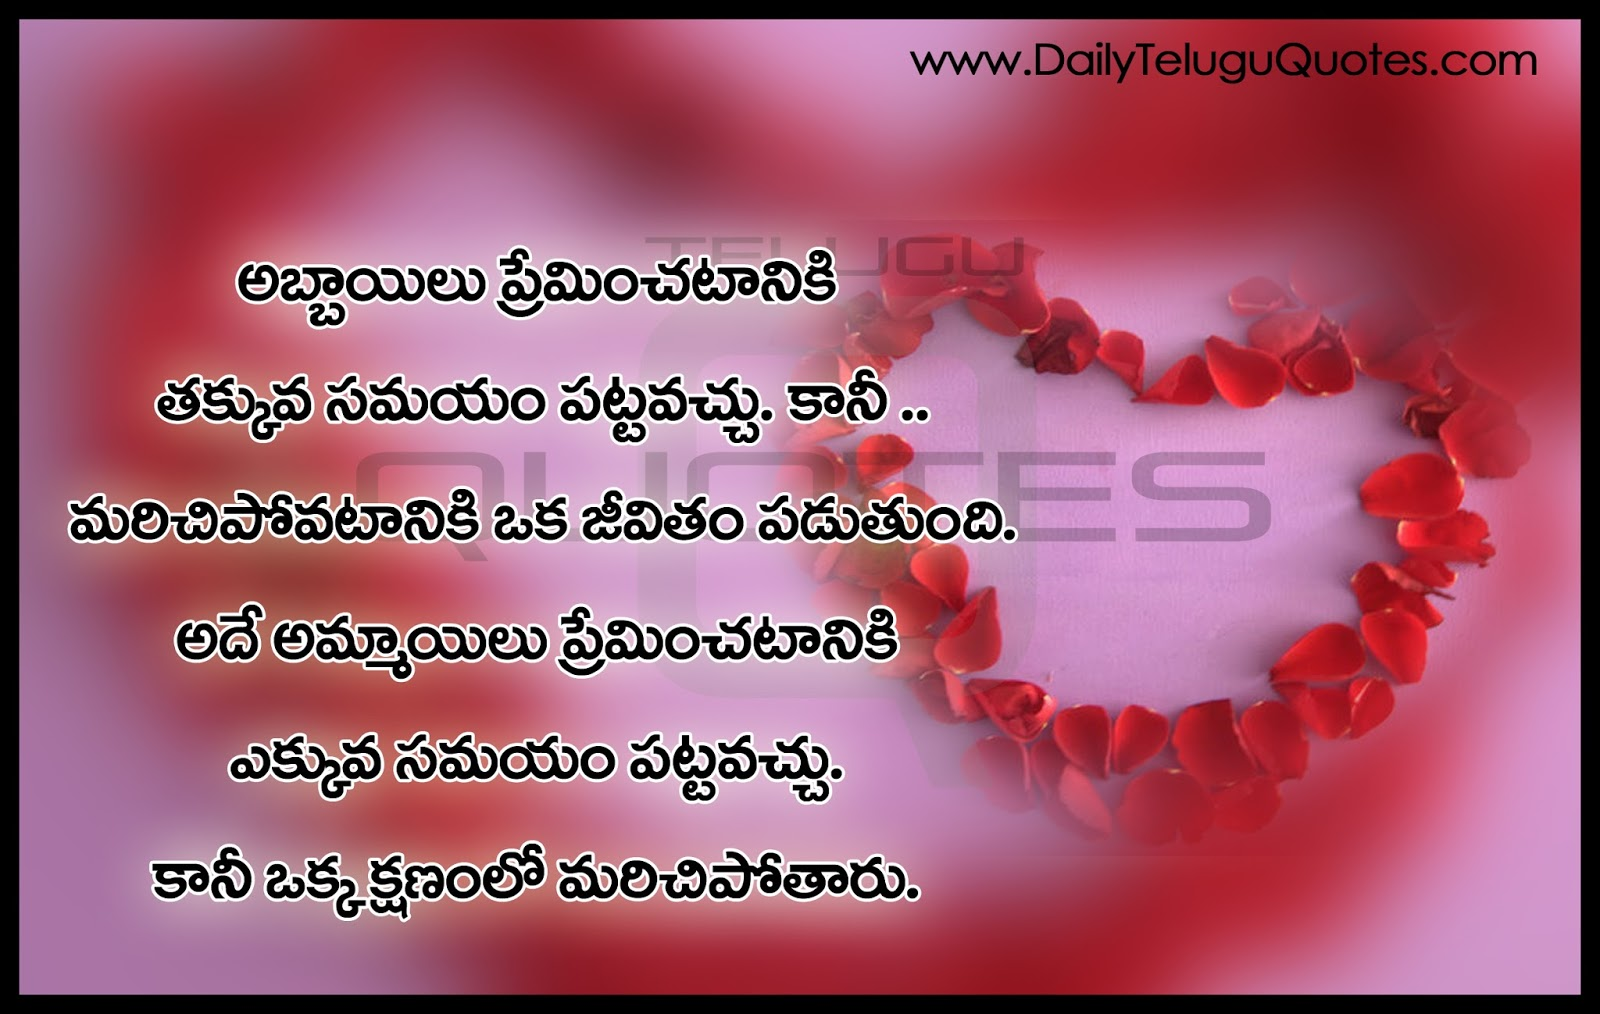 Telugu Love Quotes and Sayings | DAILYTELUGUQUOTES.COM ...